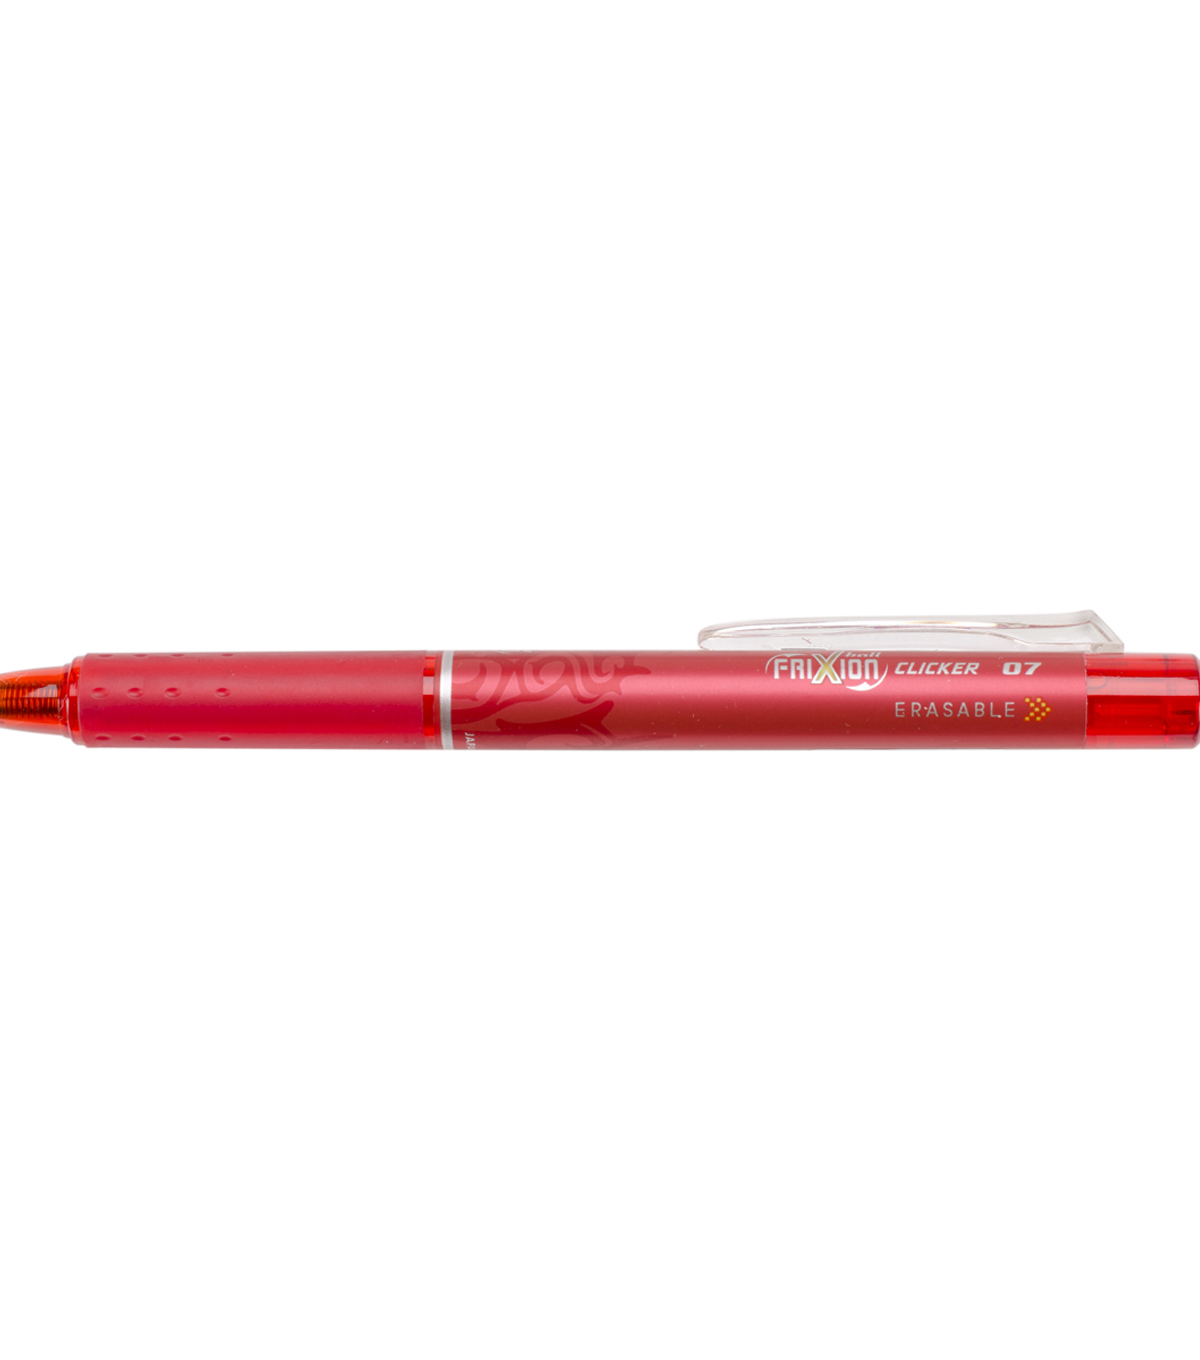 Pilot FriXion Fine Point Clicker Erasable Pen Open Stock-Red